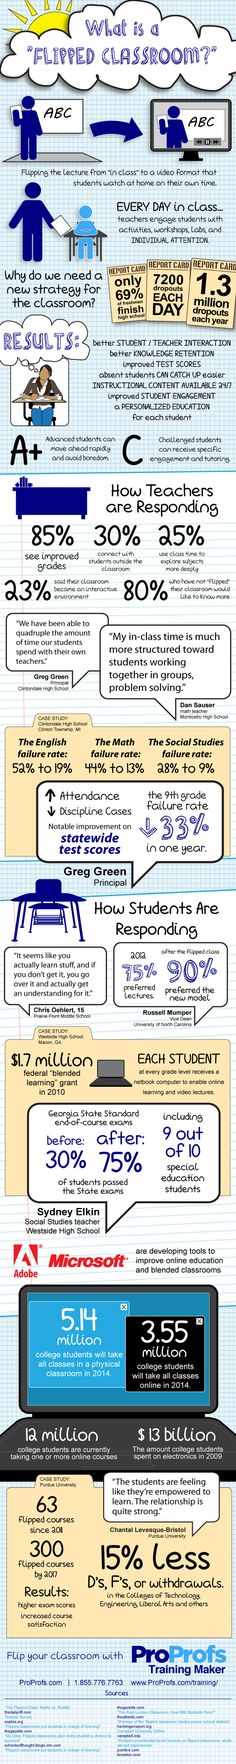 Learn more about Flipped Classrooms with this simple infographic